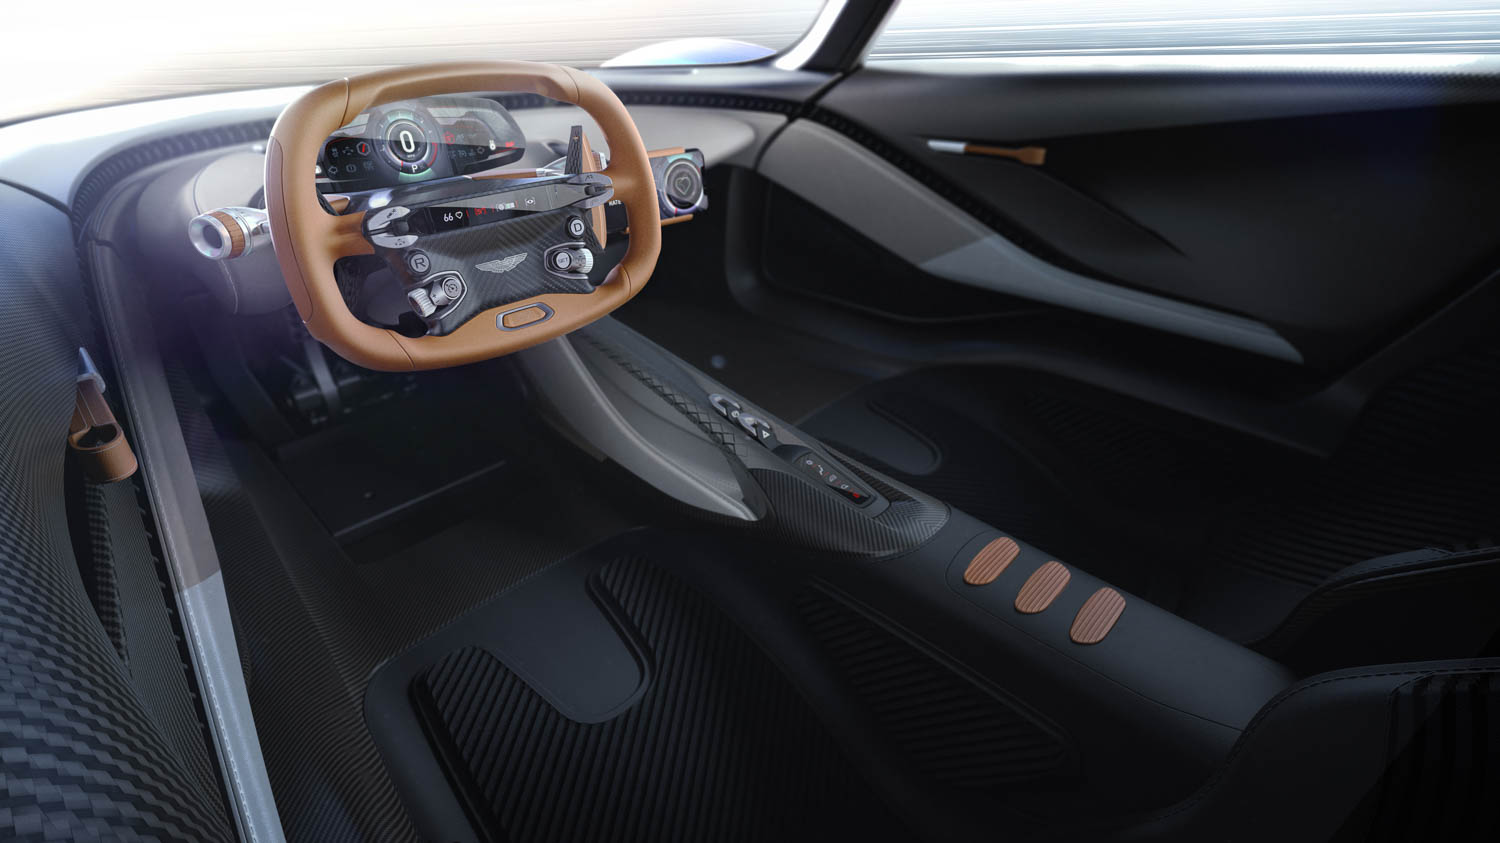 Aston Martin Project 003 cockpit